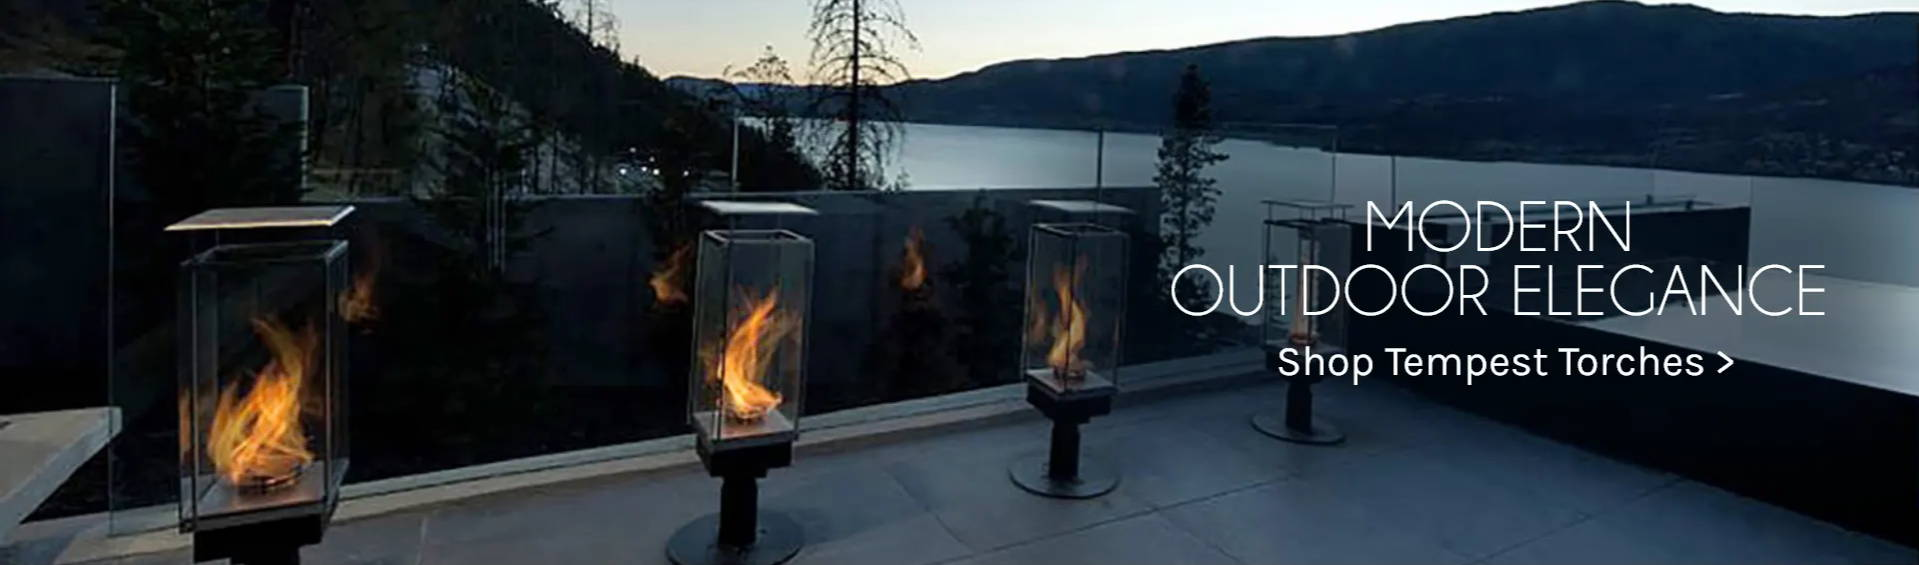 Modern Outdoor Elegance Shop Tempest Torches